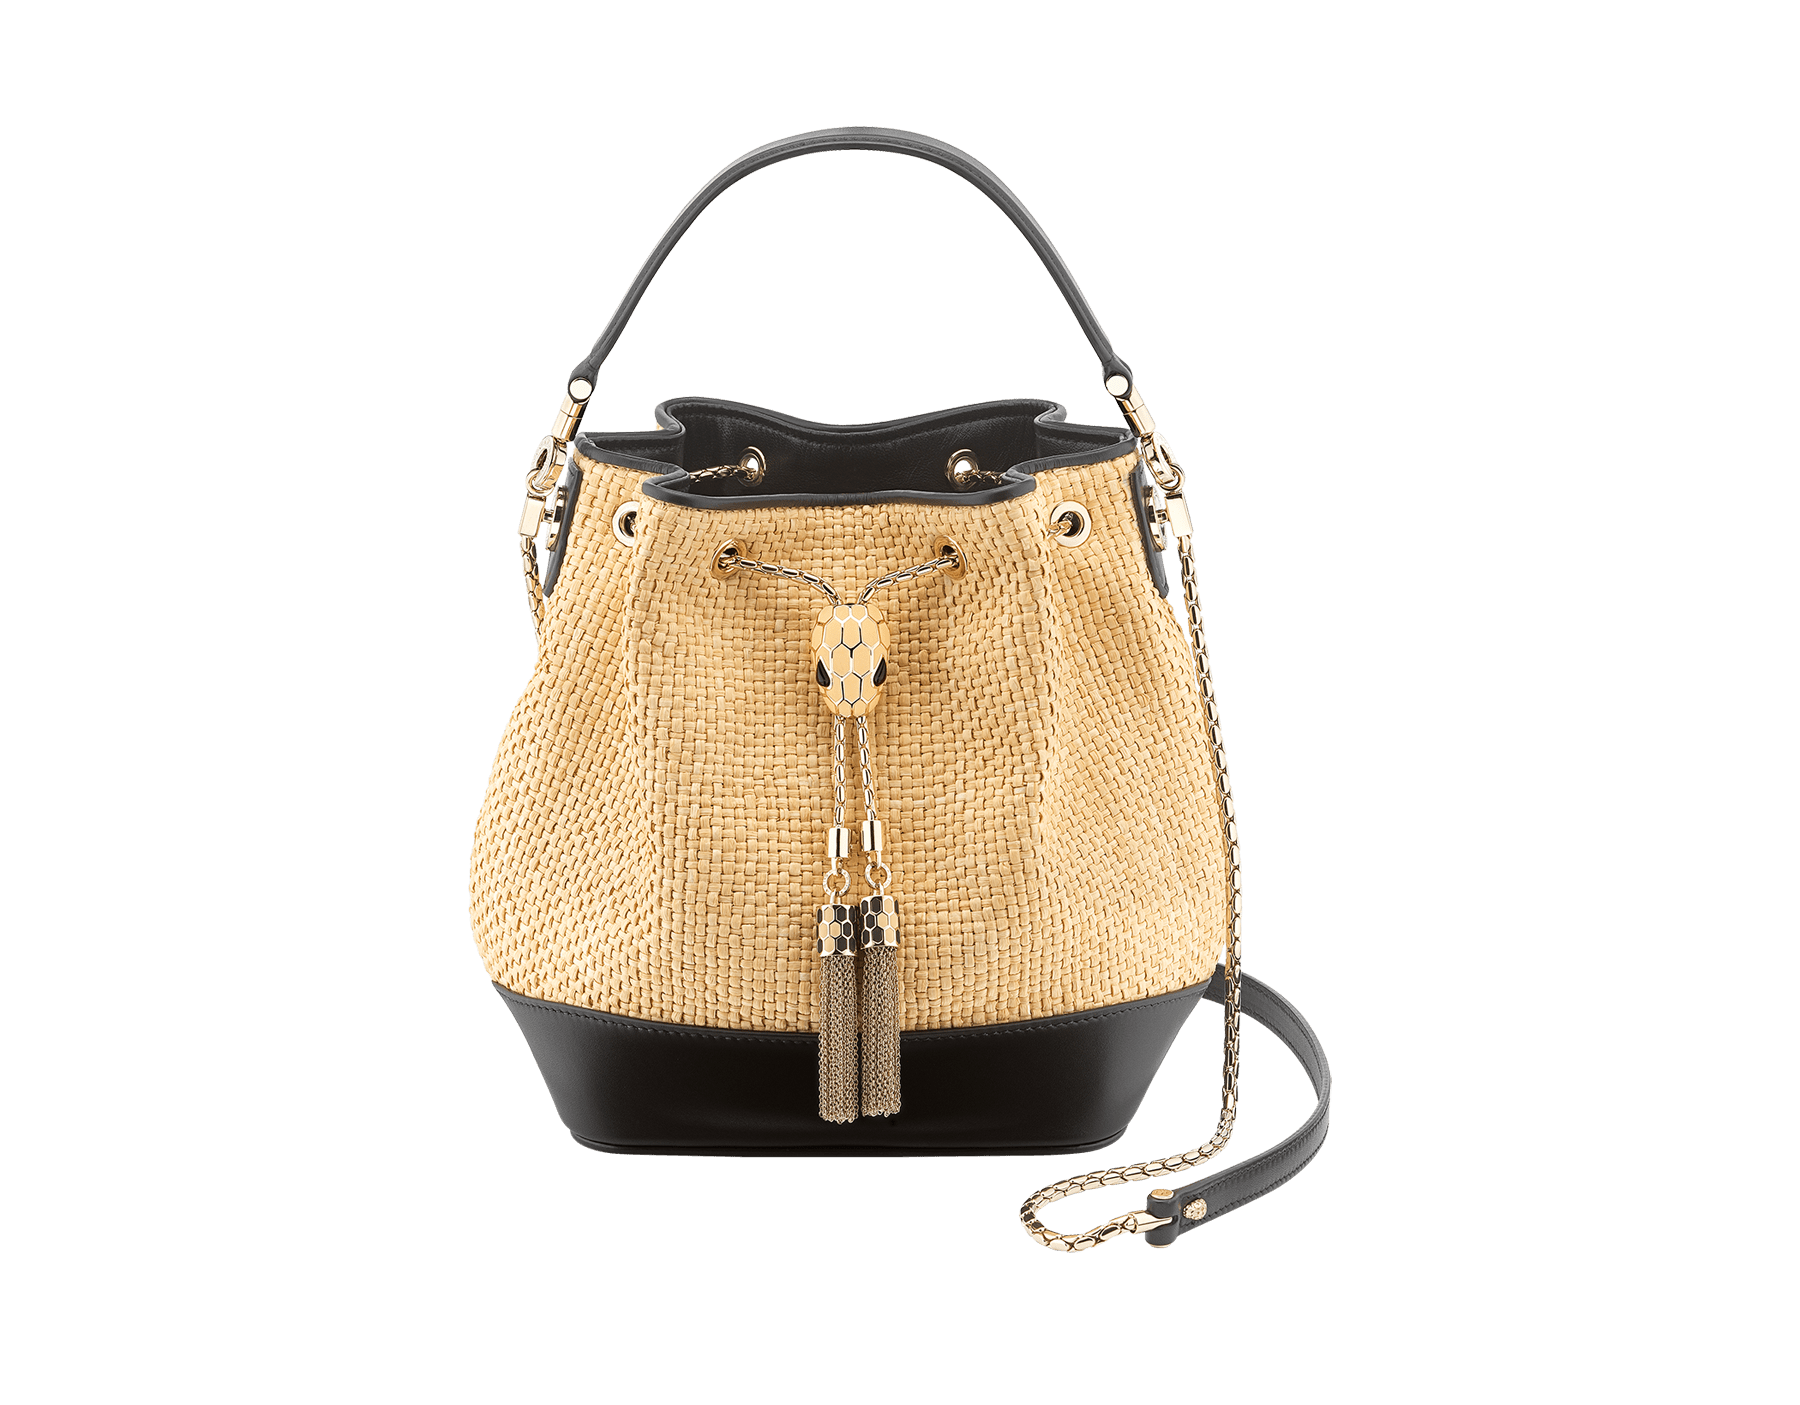 """Serpenti Forever"" small bucket bag in beige raffia and black calfskin, with black nappa leather internal lining. Alluring light gold-plated brass snakehead closure enhanced with full matte Natural beige enamel and black onyx eyes. 290960 image 1"